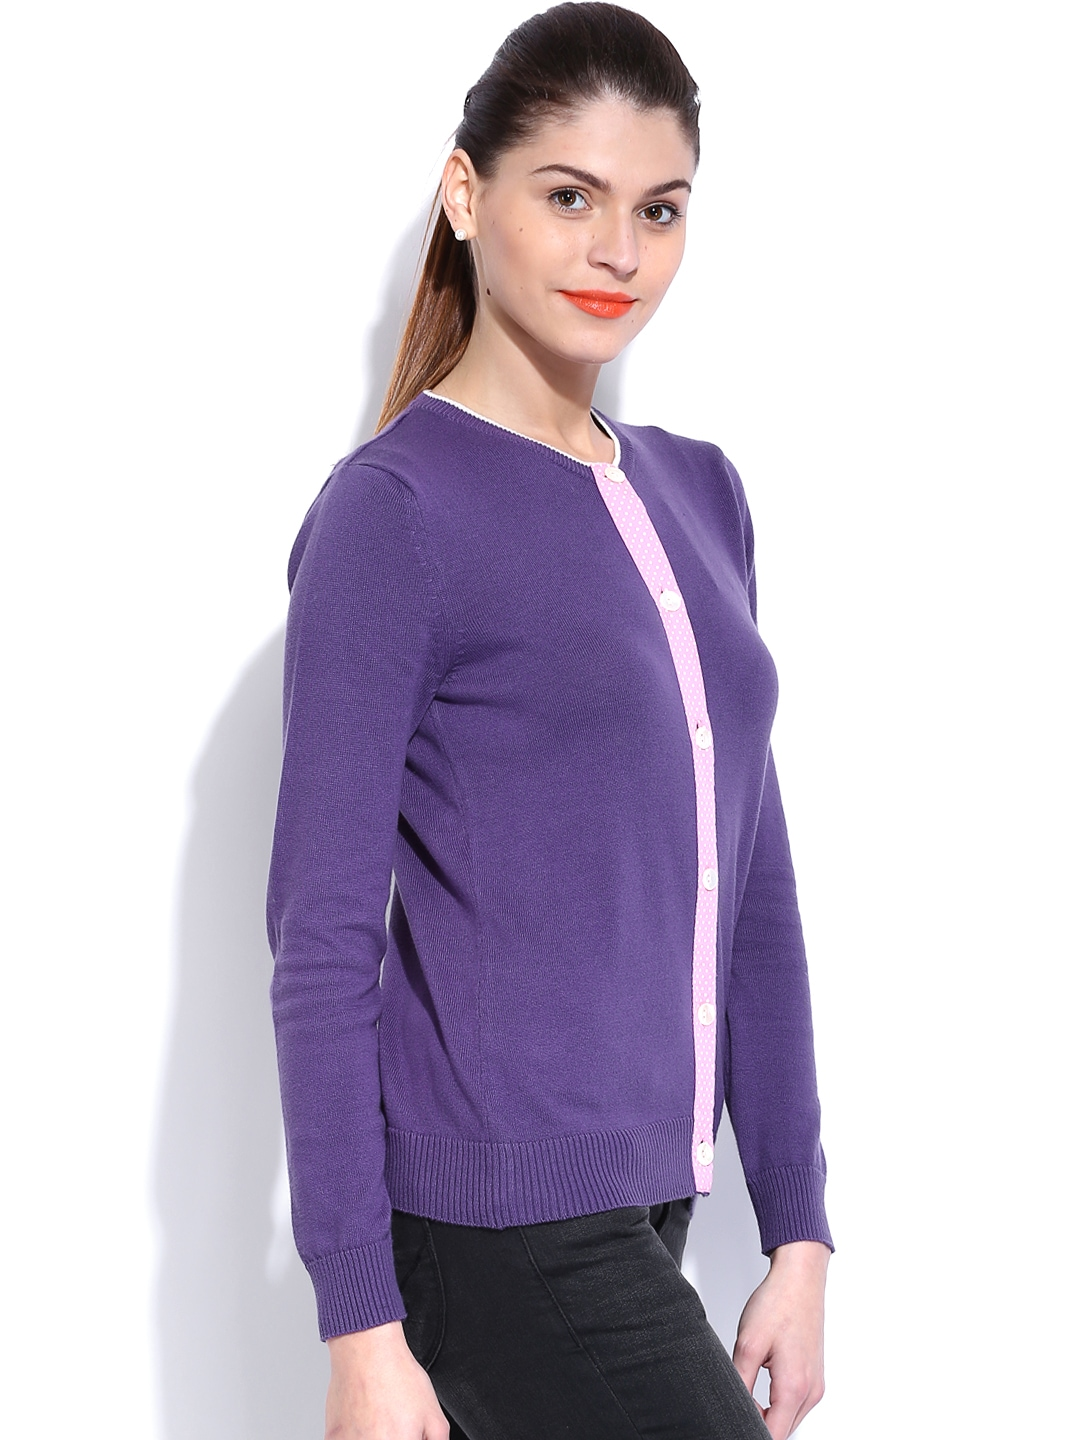 As the temperature drops, slip on a comfortable cardigan. View our selection of button through and zip-through cardigans for men and women. Order today.